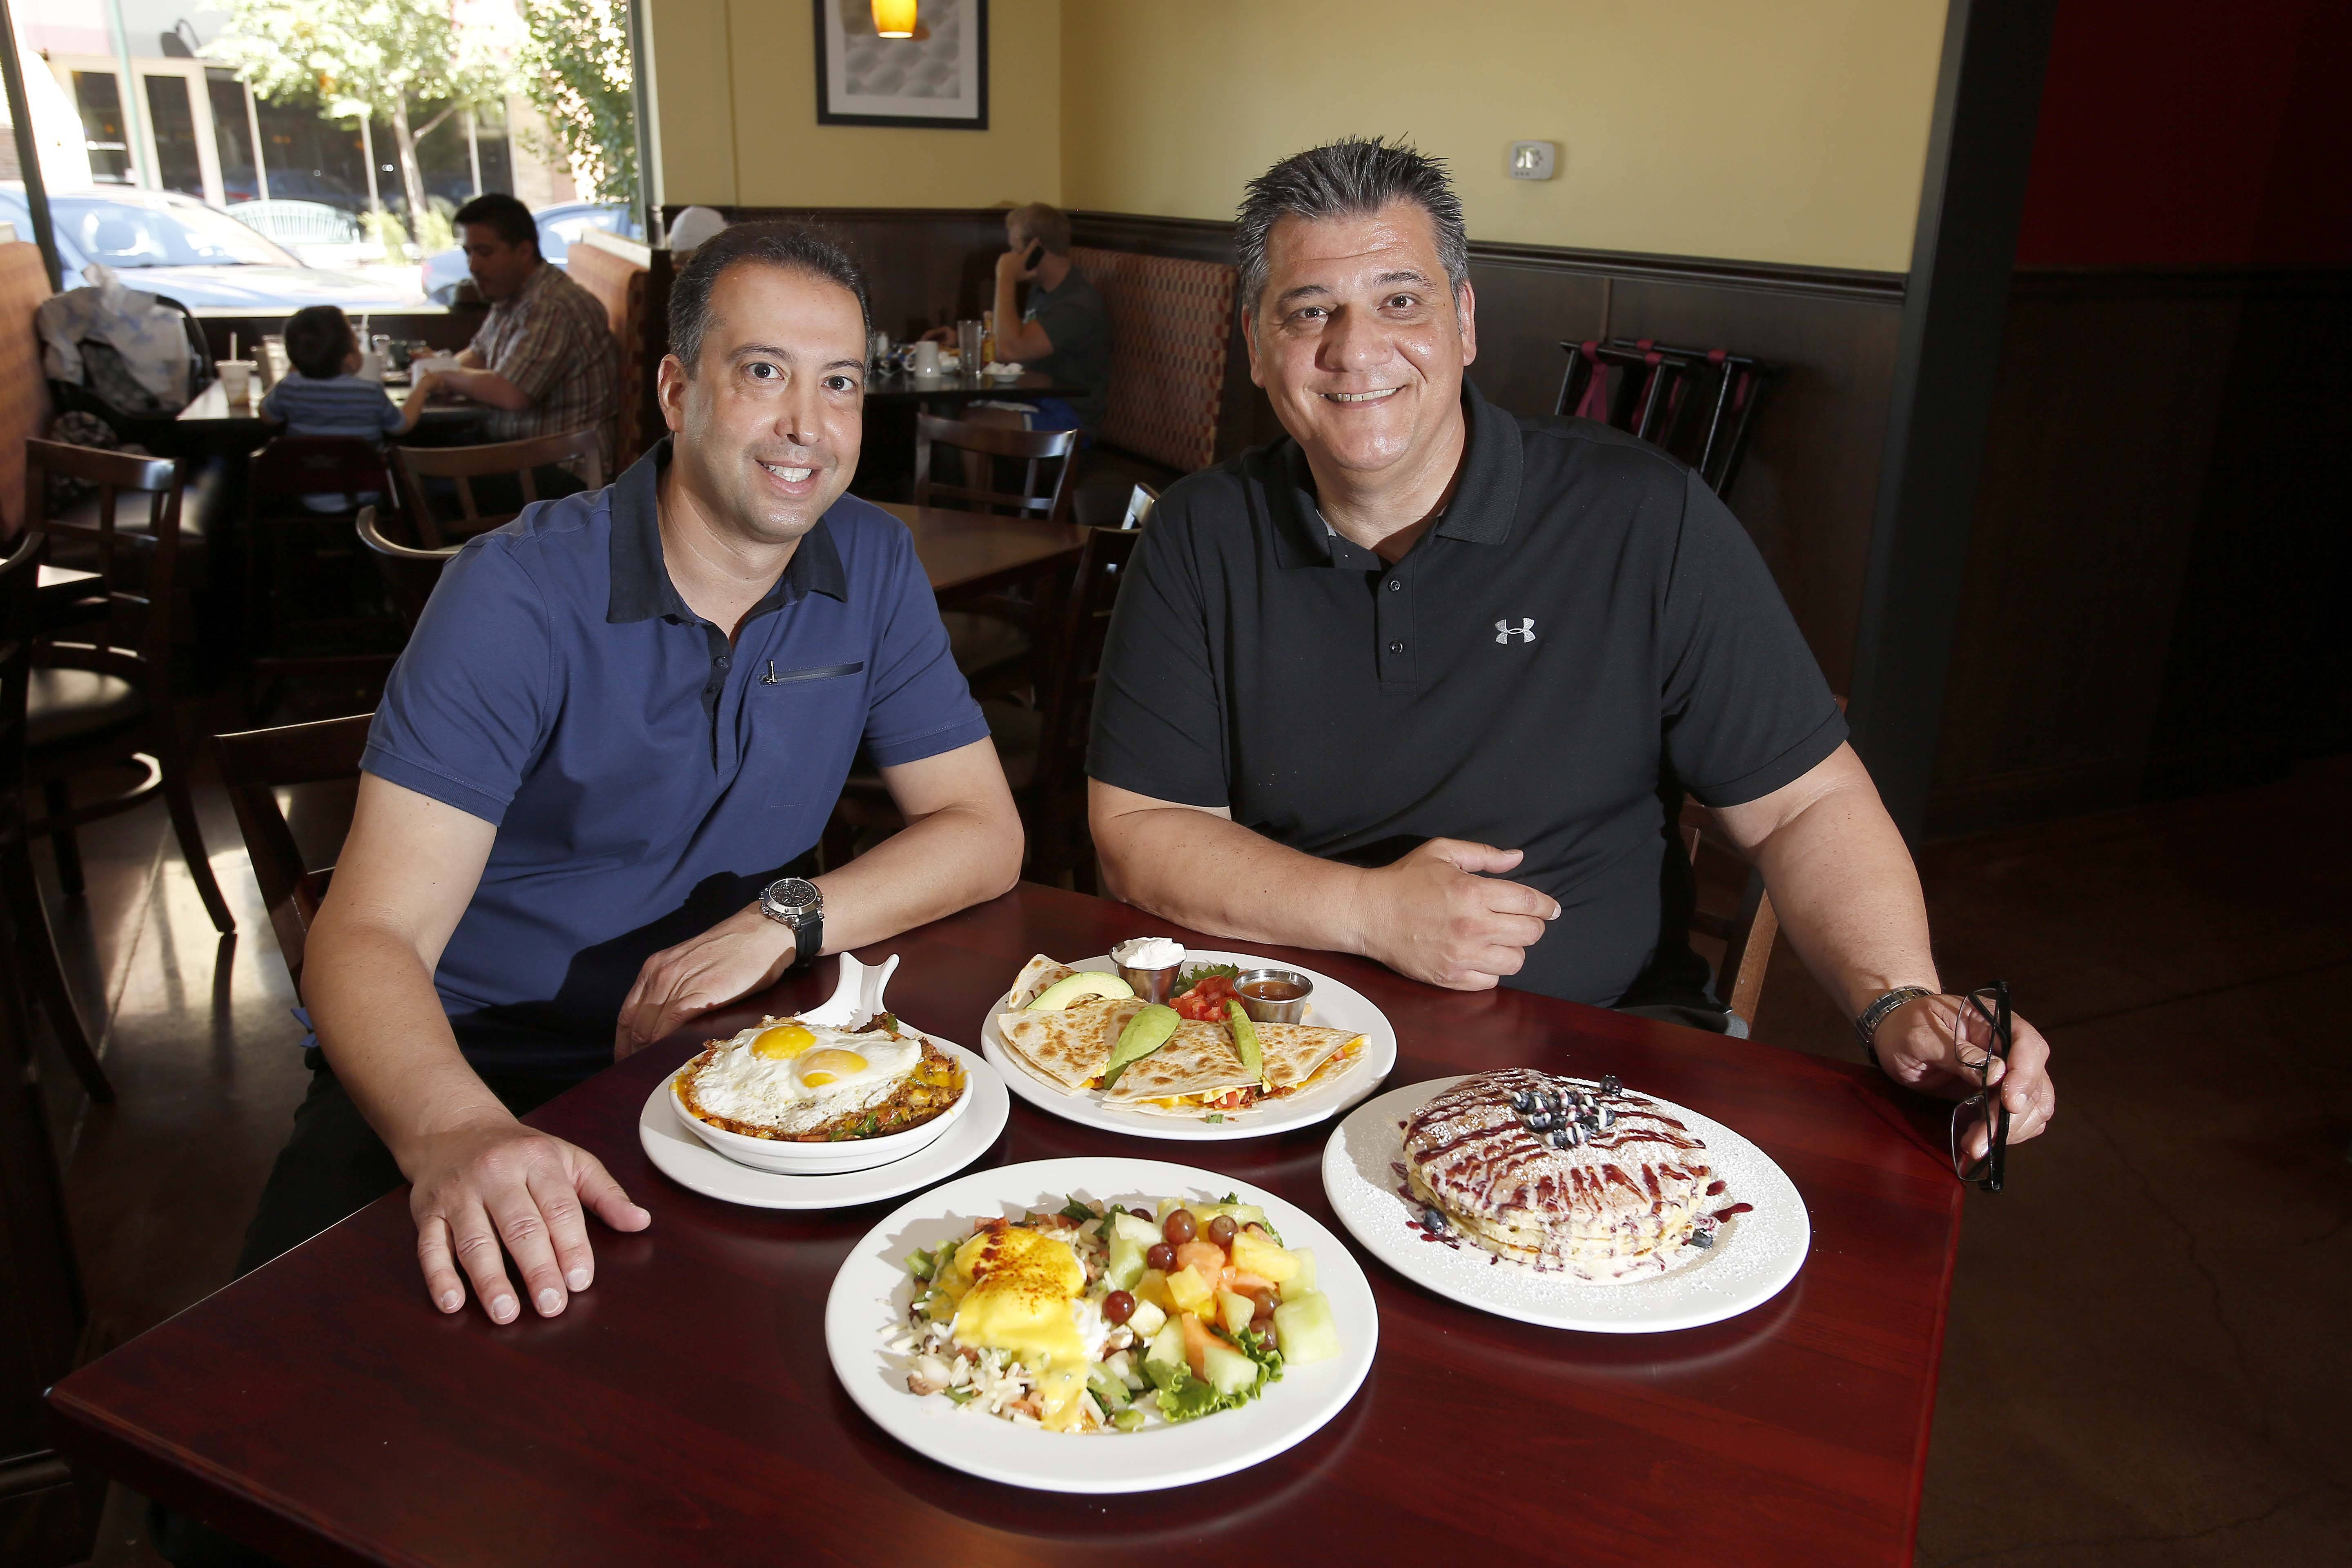 Co-owner Andy Zatos, left, and manager Frank Paganis show off a couple of the delectable dishes at Brunch Cafe in St. Charles.